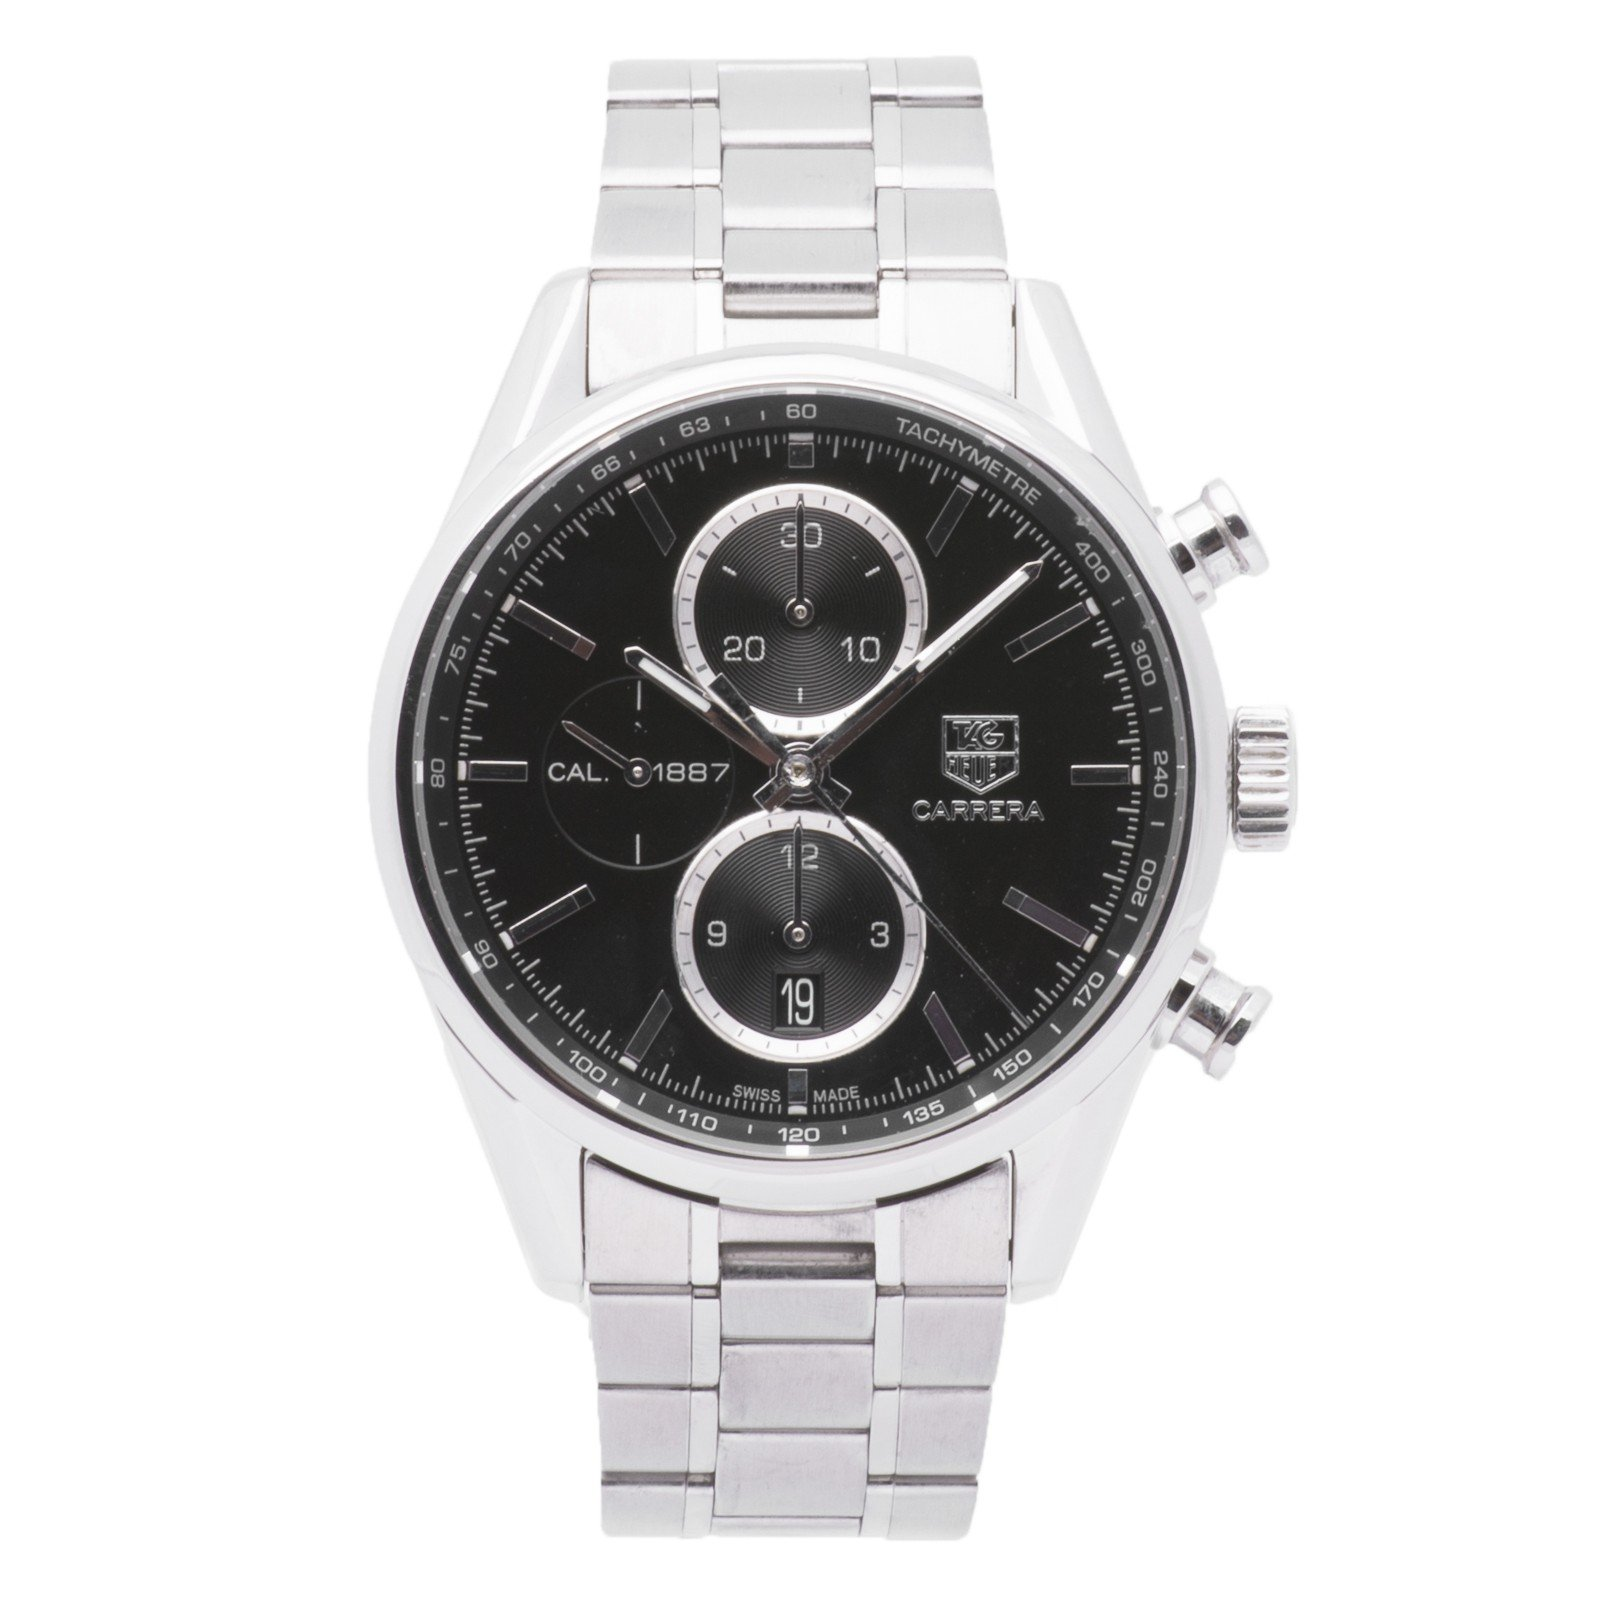 Tag Heuer Carrera automatic-self-wind mens Watch CAR2110.BA0724 (Certified Pre-owned)